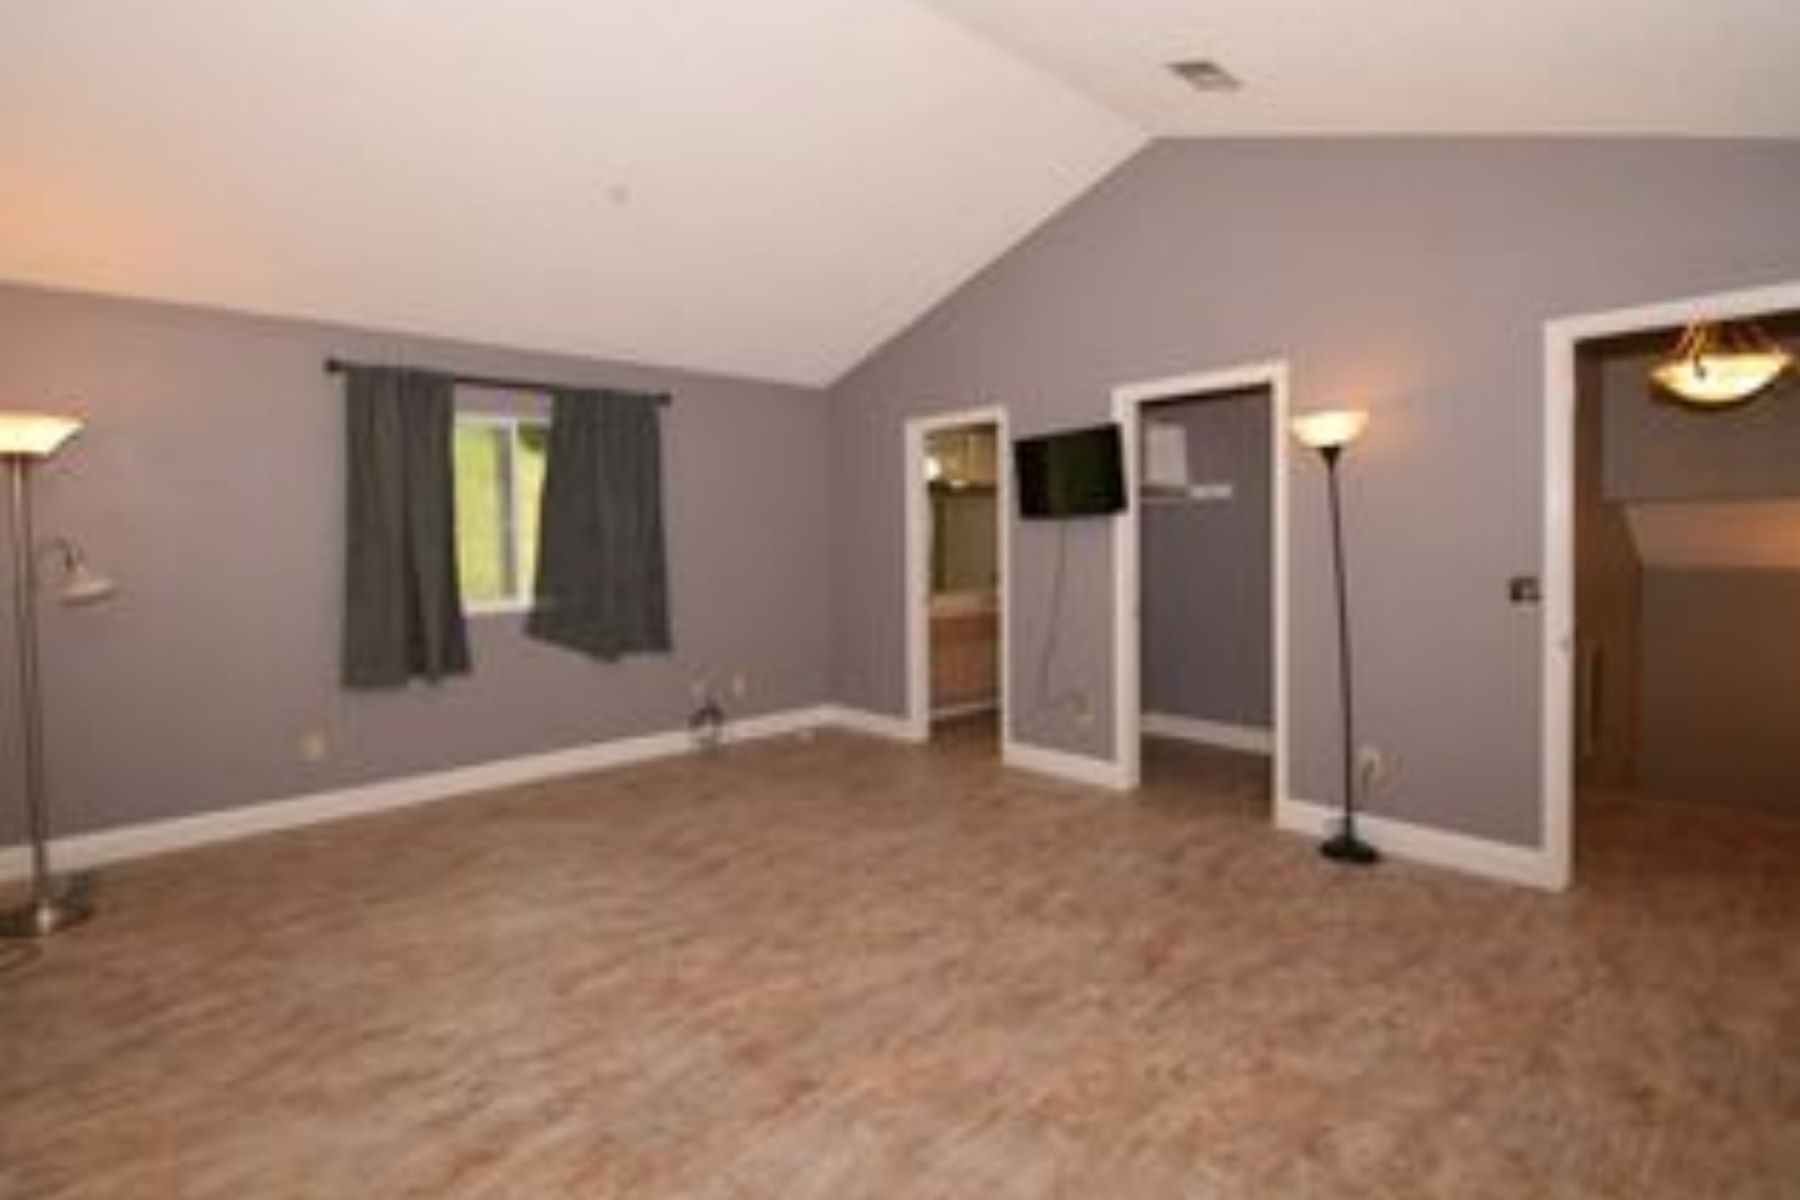 Additional photo for property listing at Western Oaks Village 1130 Redwood Blvd Novato, California 94947 United States